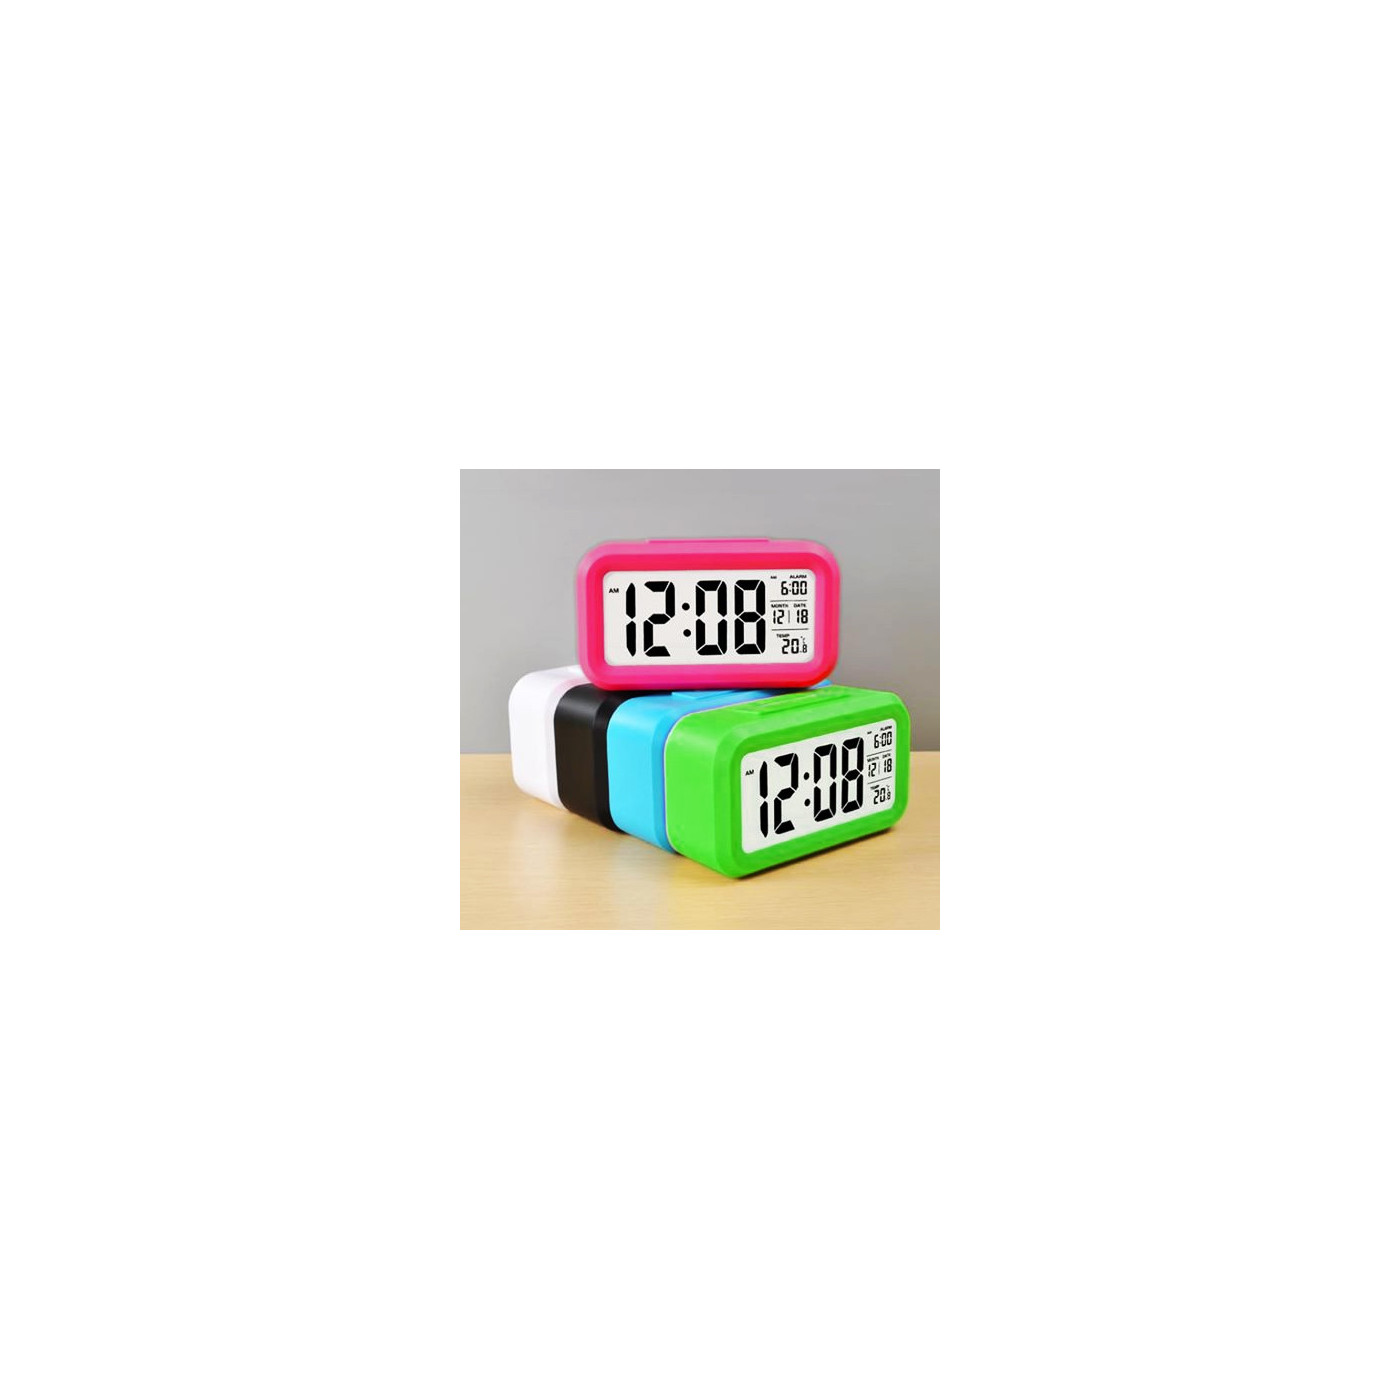 Clock with alarm in cheerful color: pink